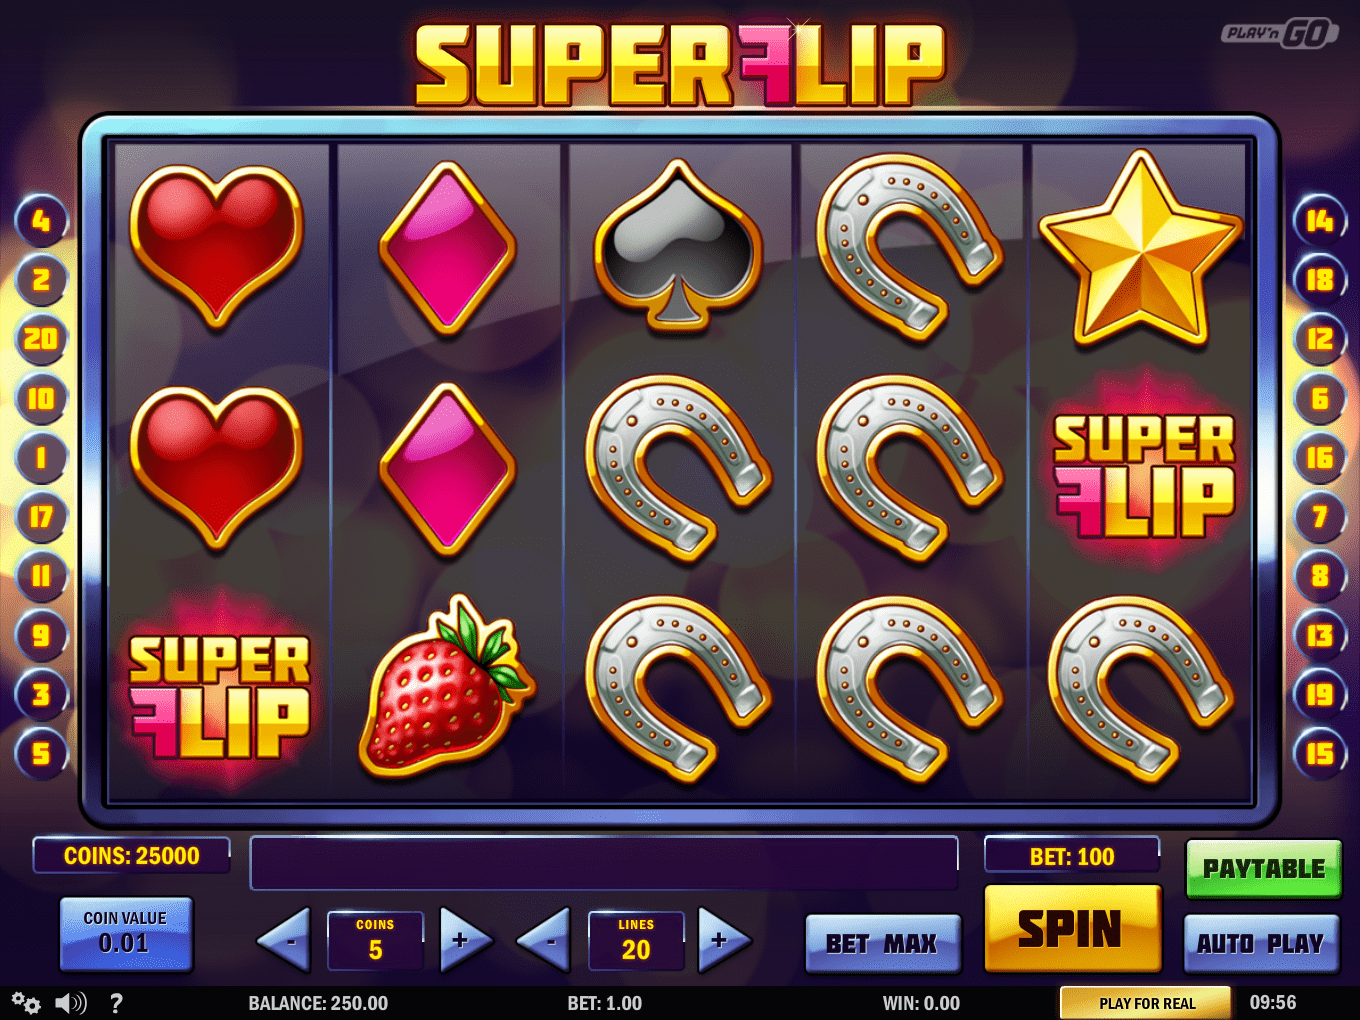 Spiele Super Flip - Video Slots Online